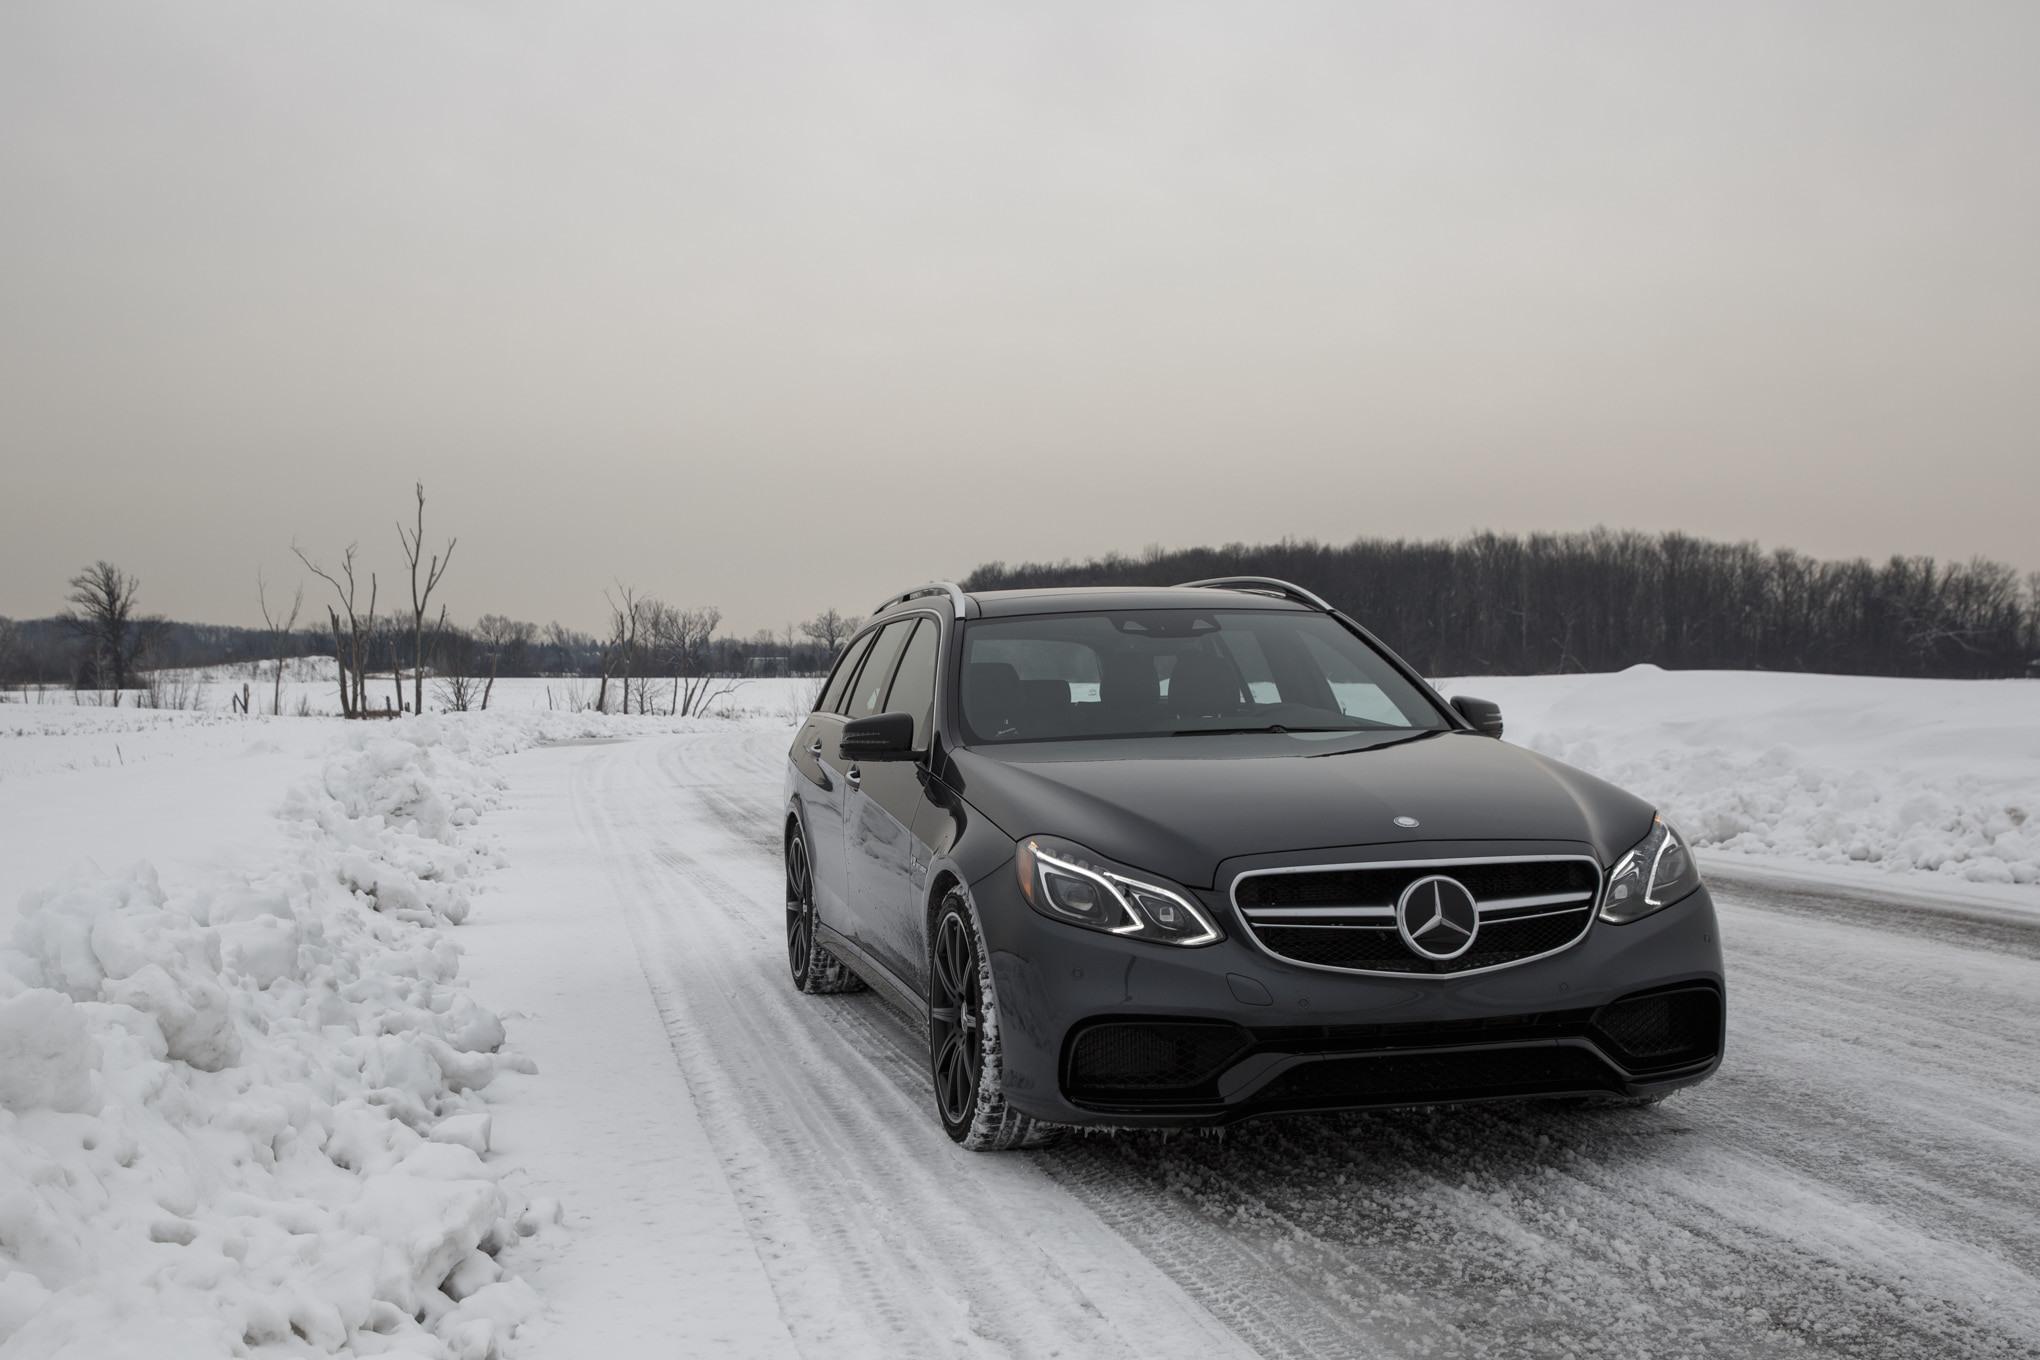 2014 Mercedes Benz E63 AMG Wagon Front End1